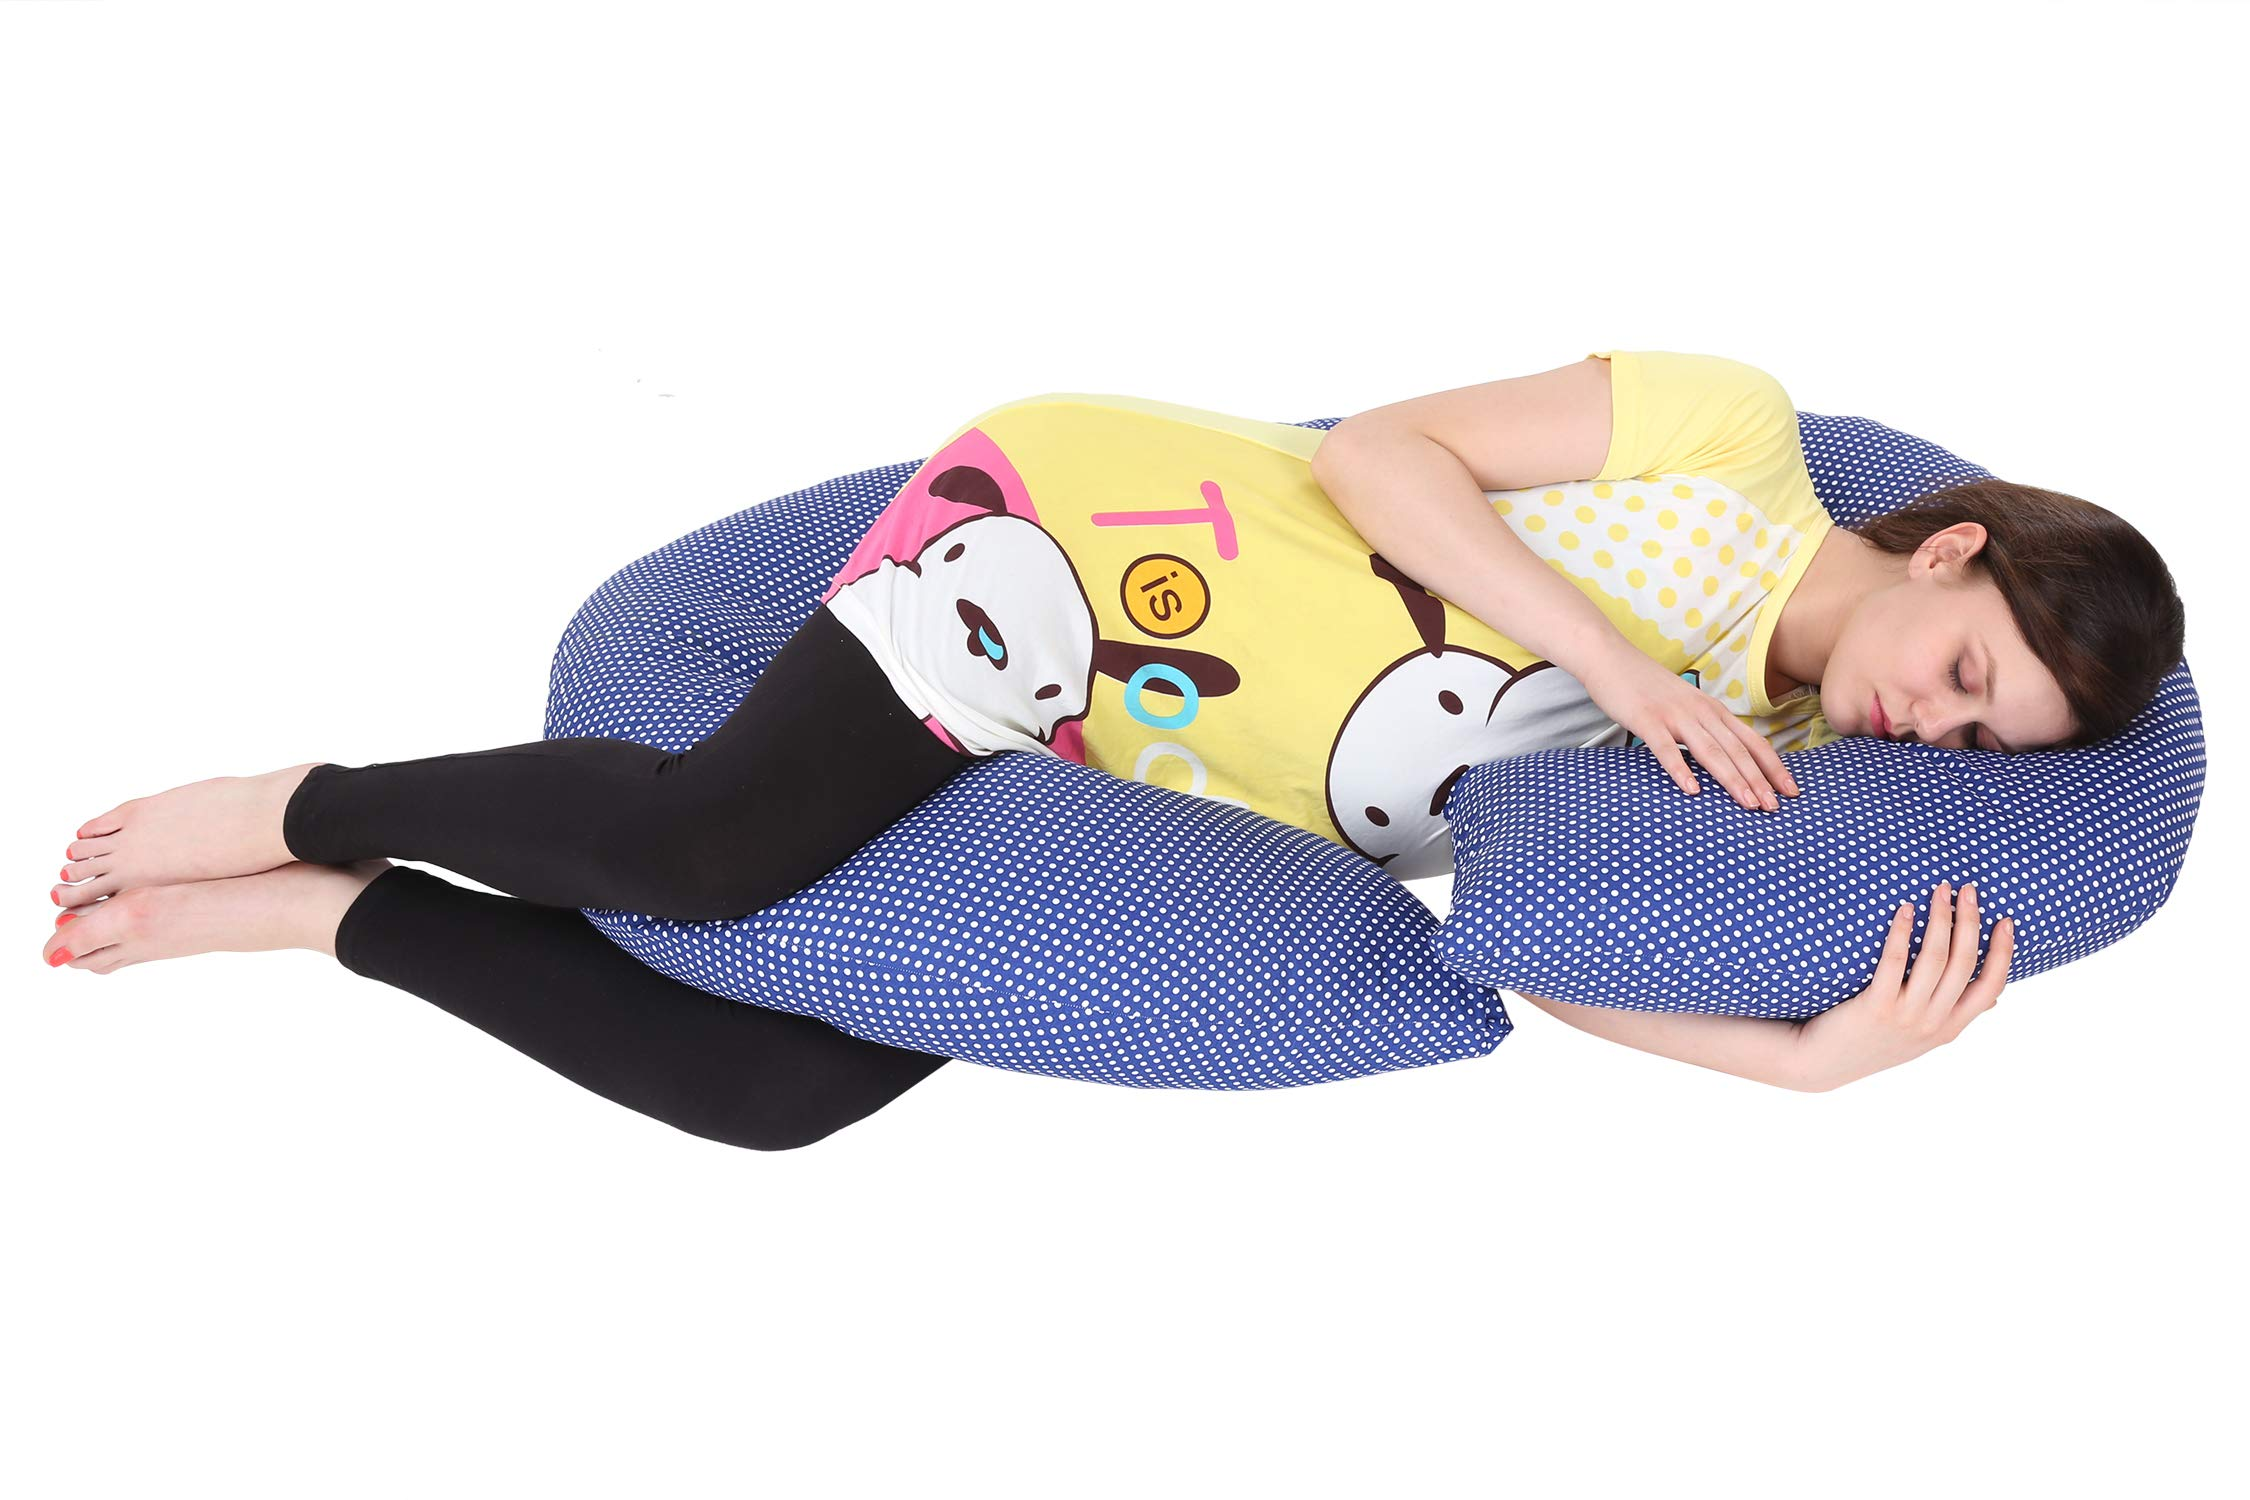 MomToBe C Shape Maternity Pillow With 100% Cotton Cover And Zippered Cover - Blue product image